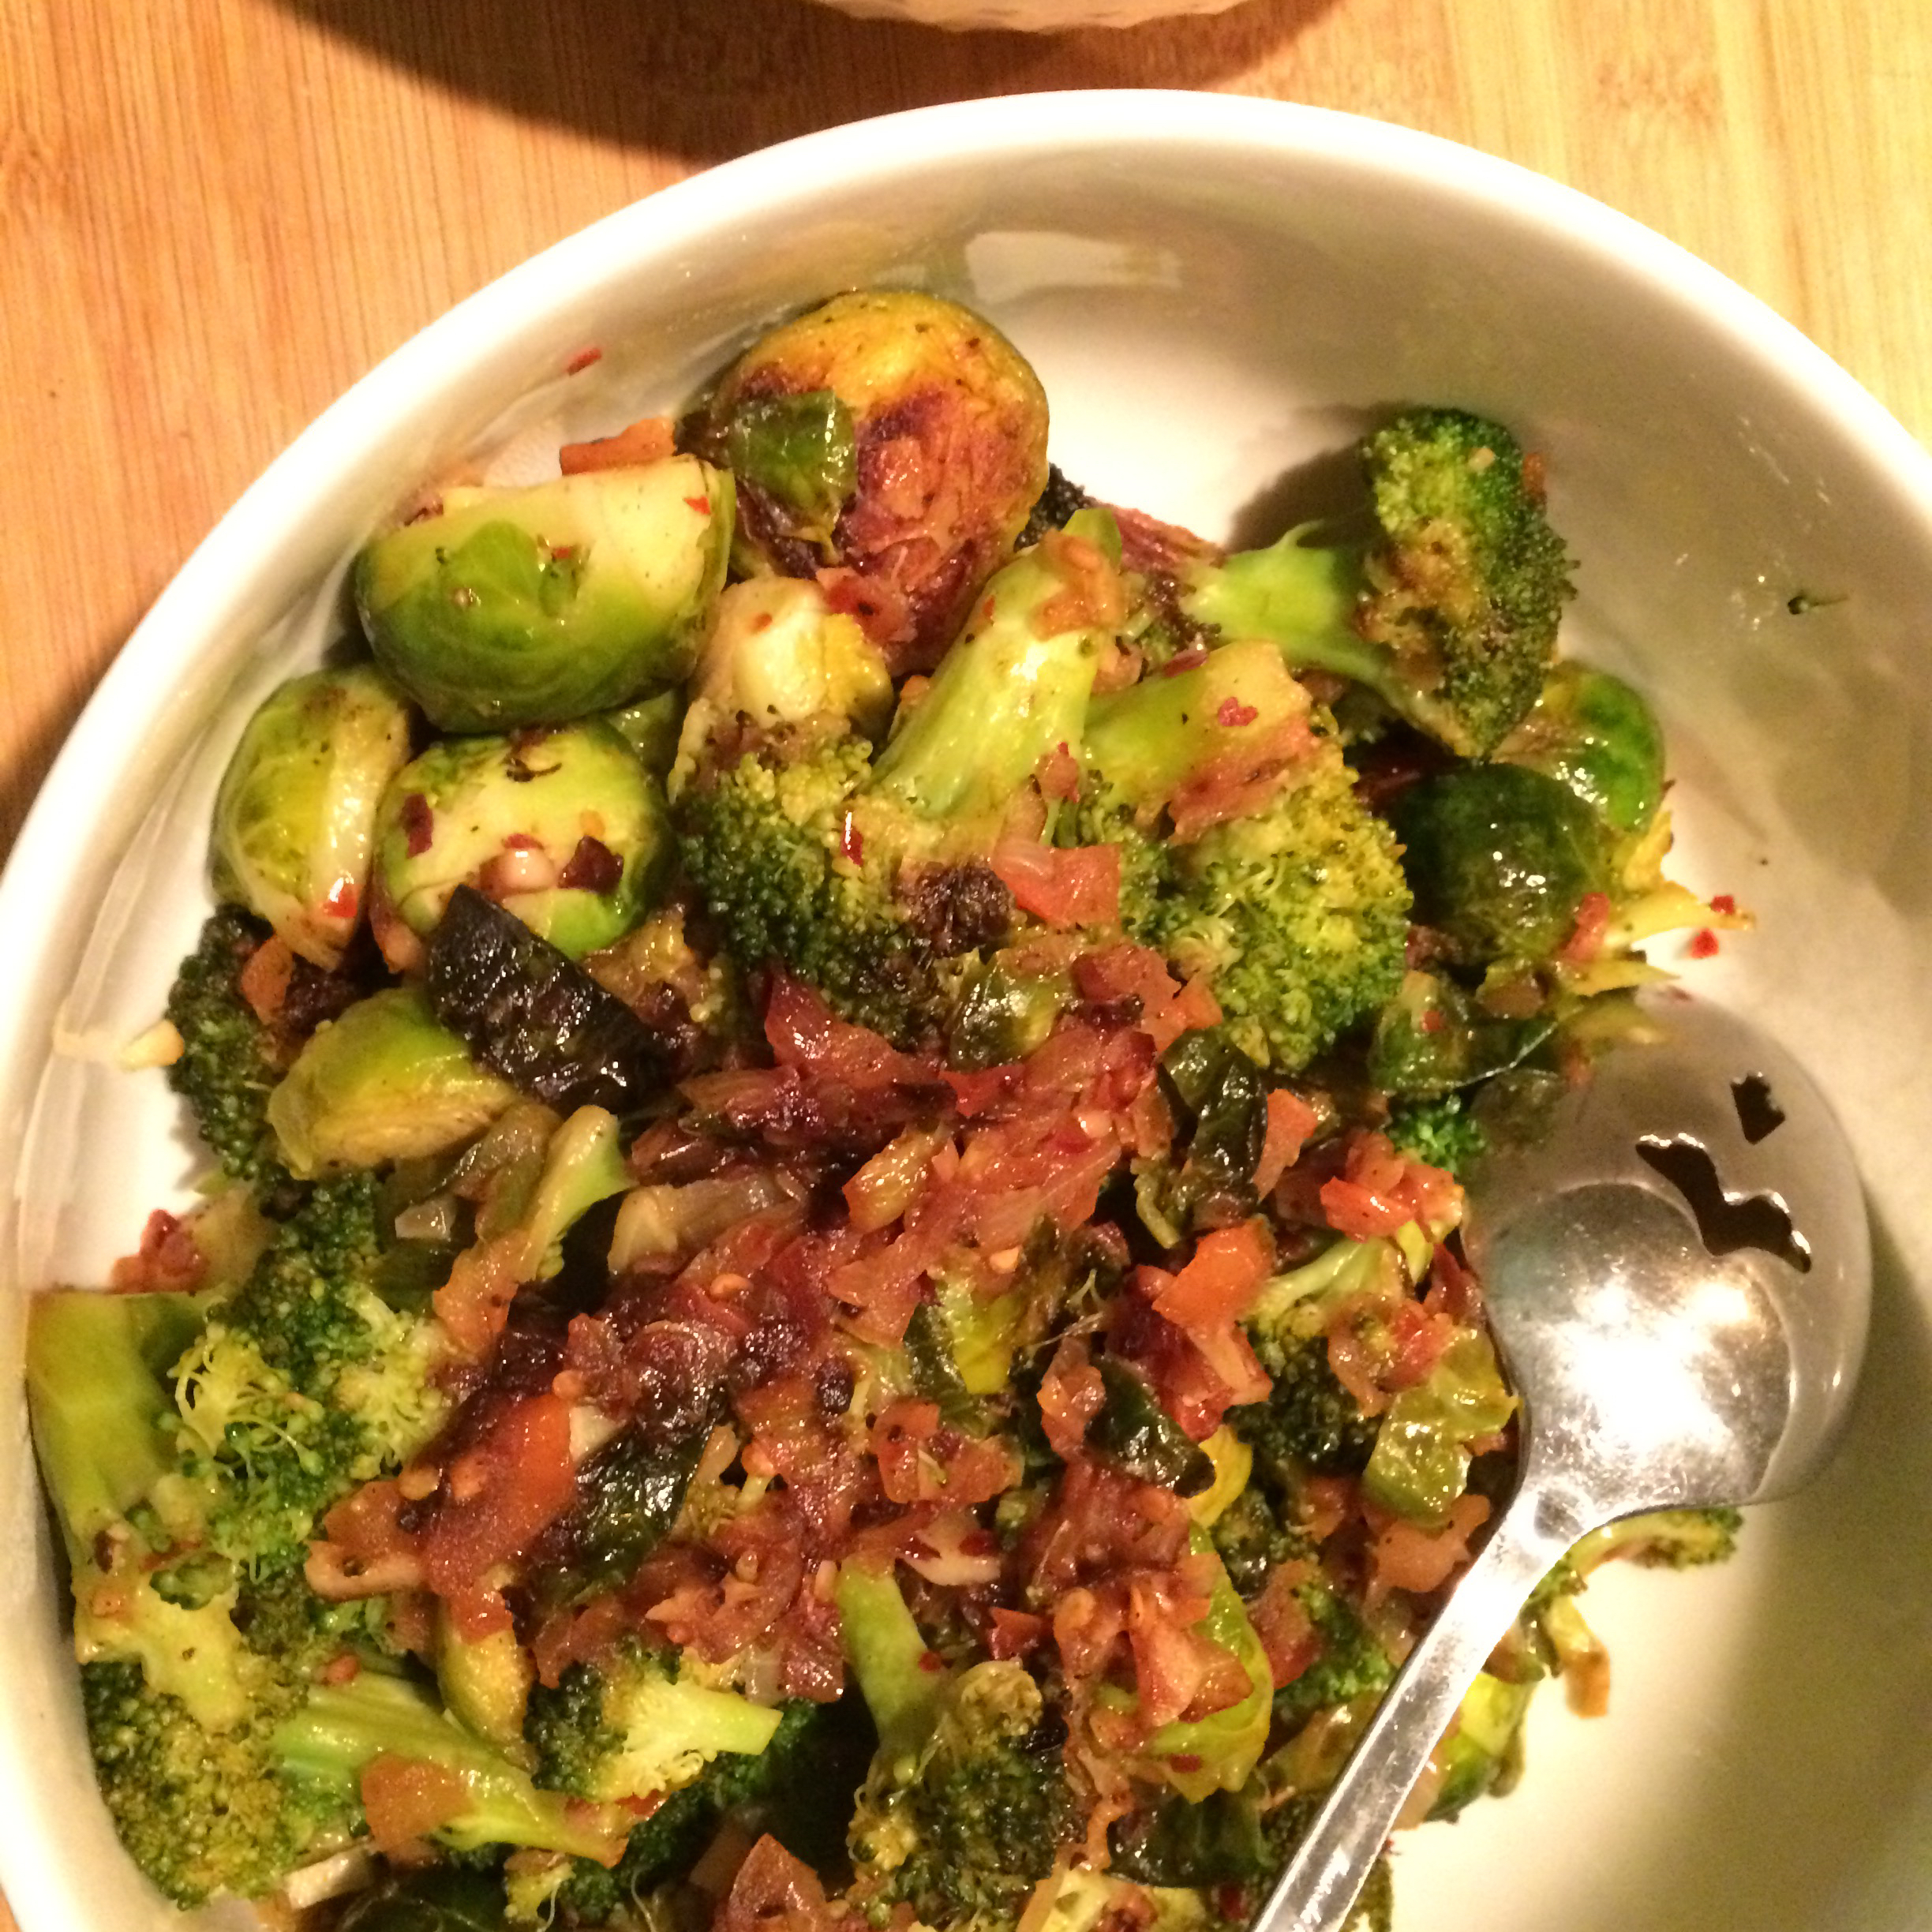 Broccoli and Brussels Sprout Delight James